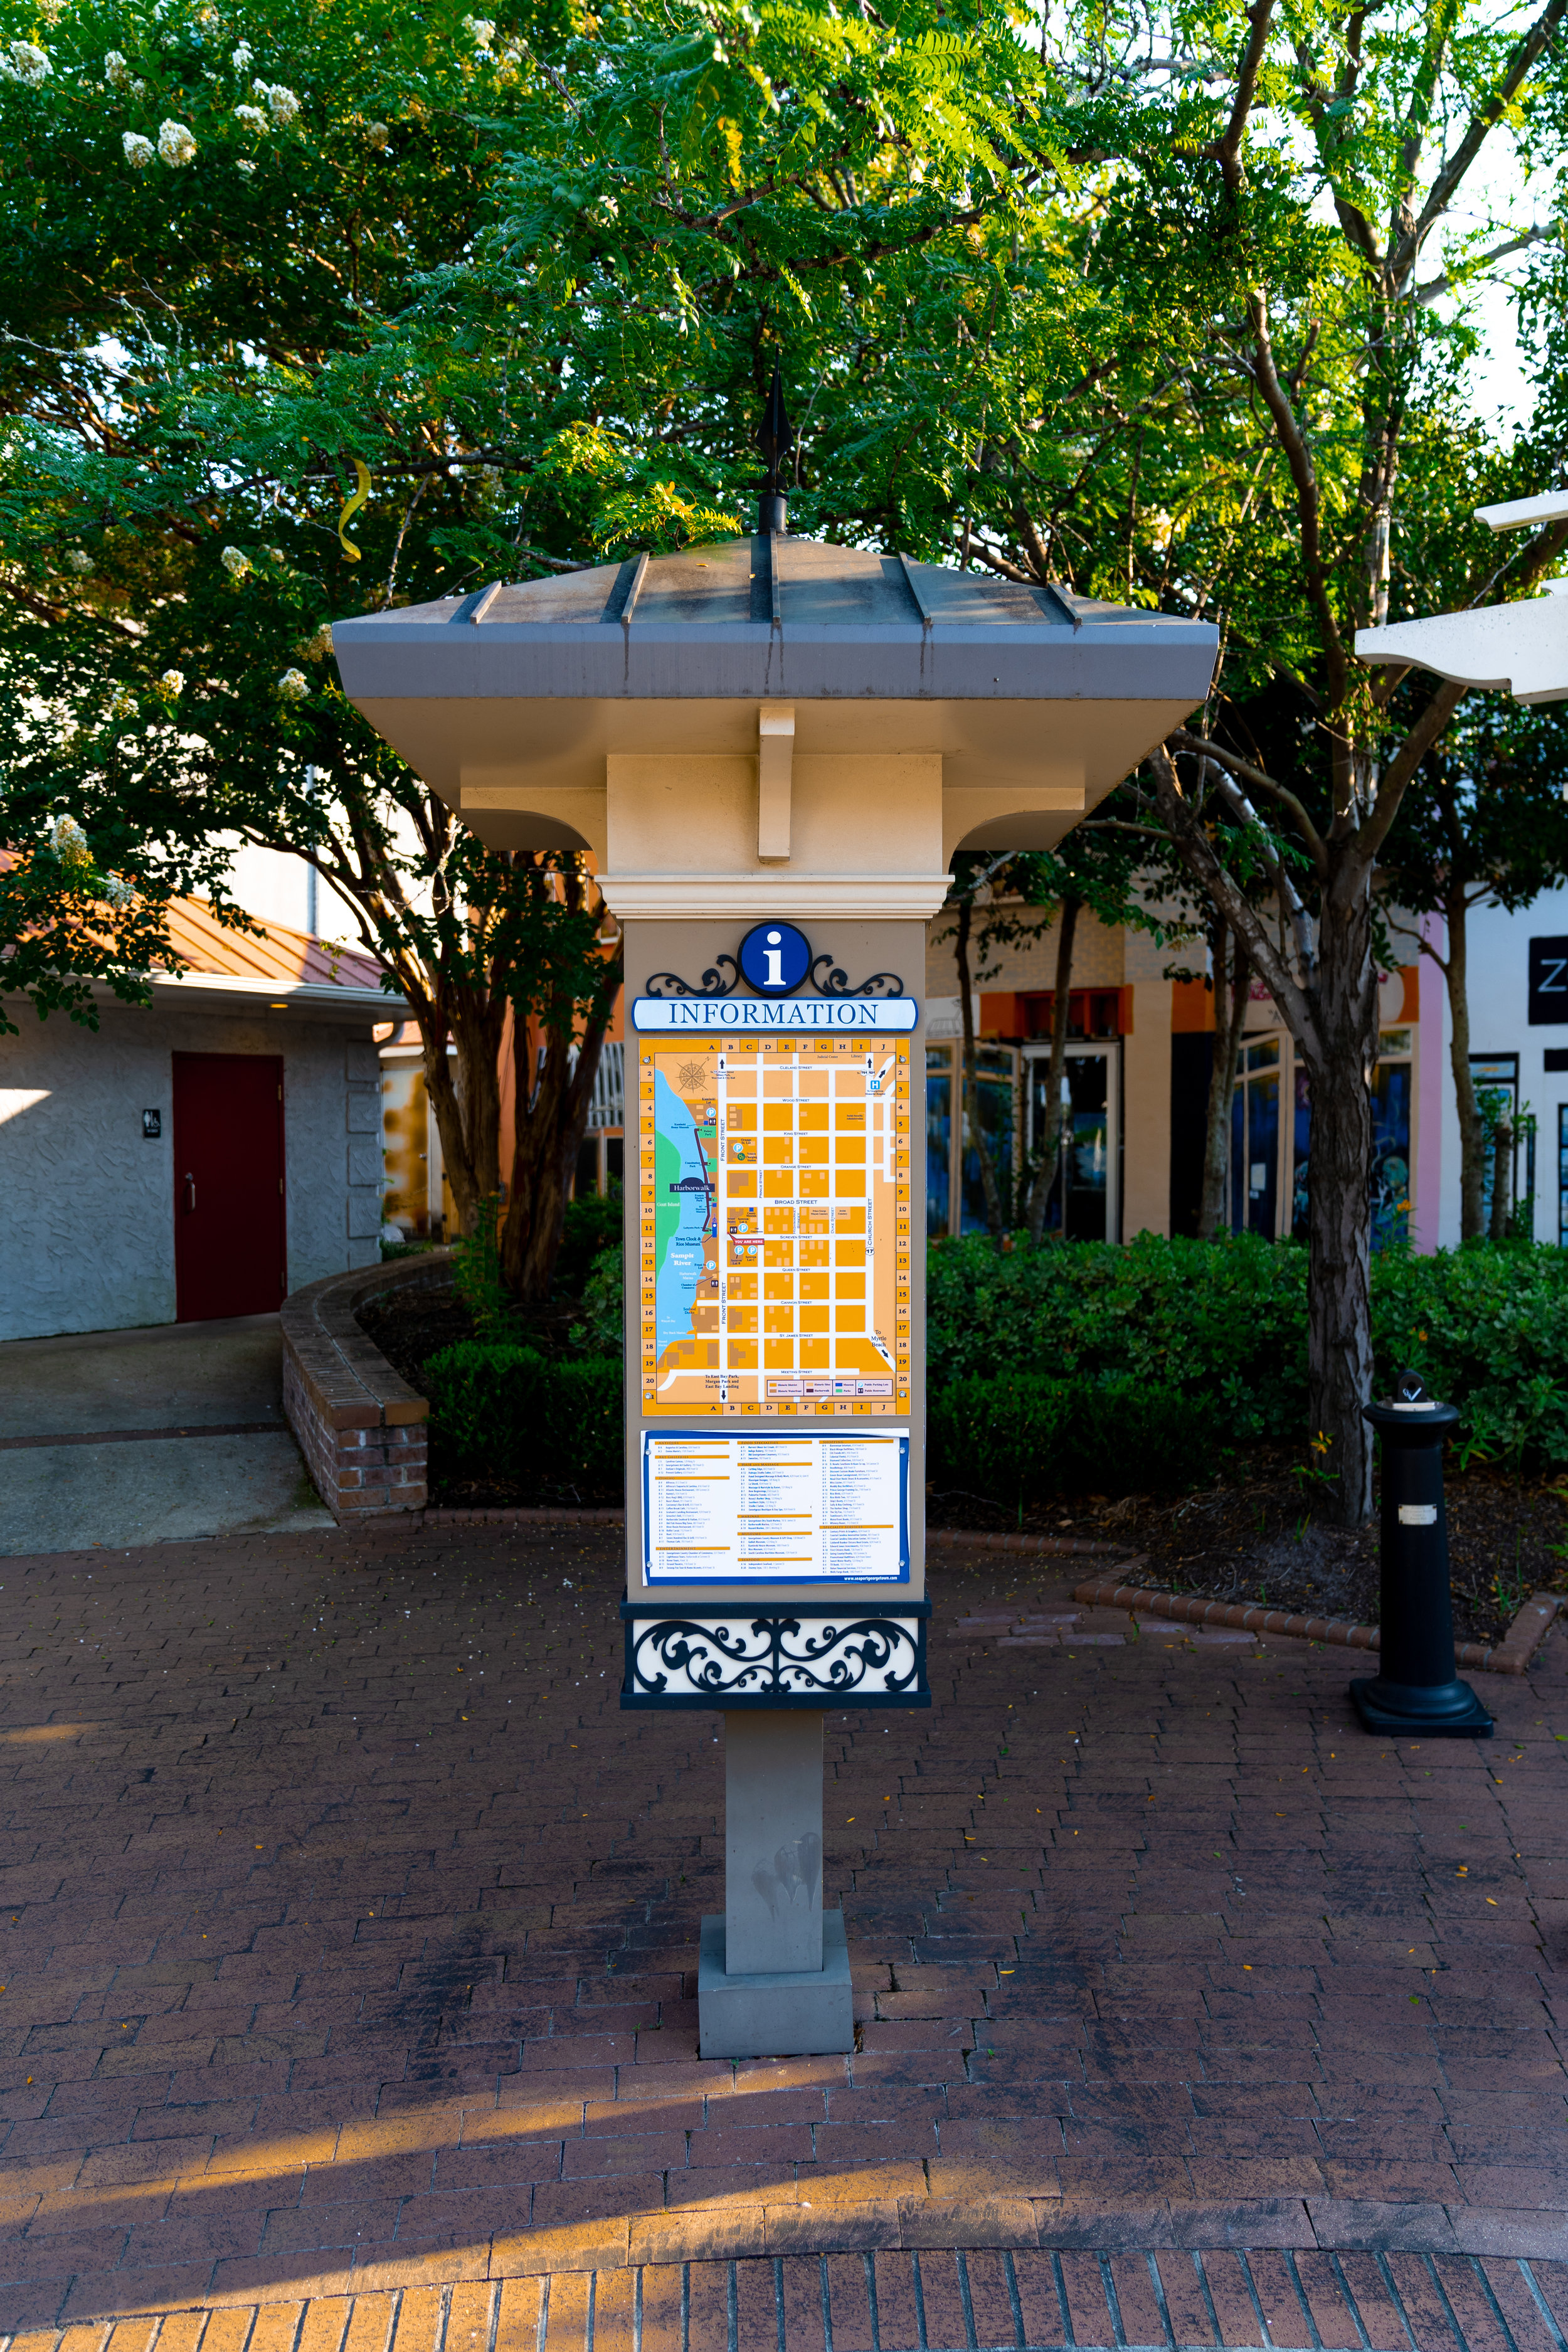 Georgetown_Wayfinding (3 of 34).jpg